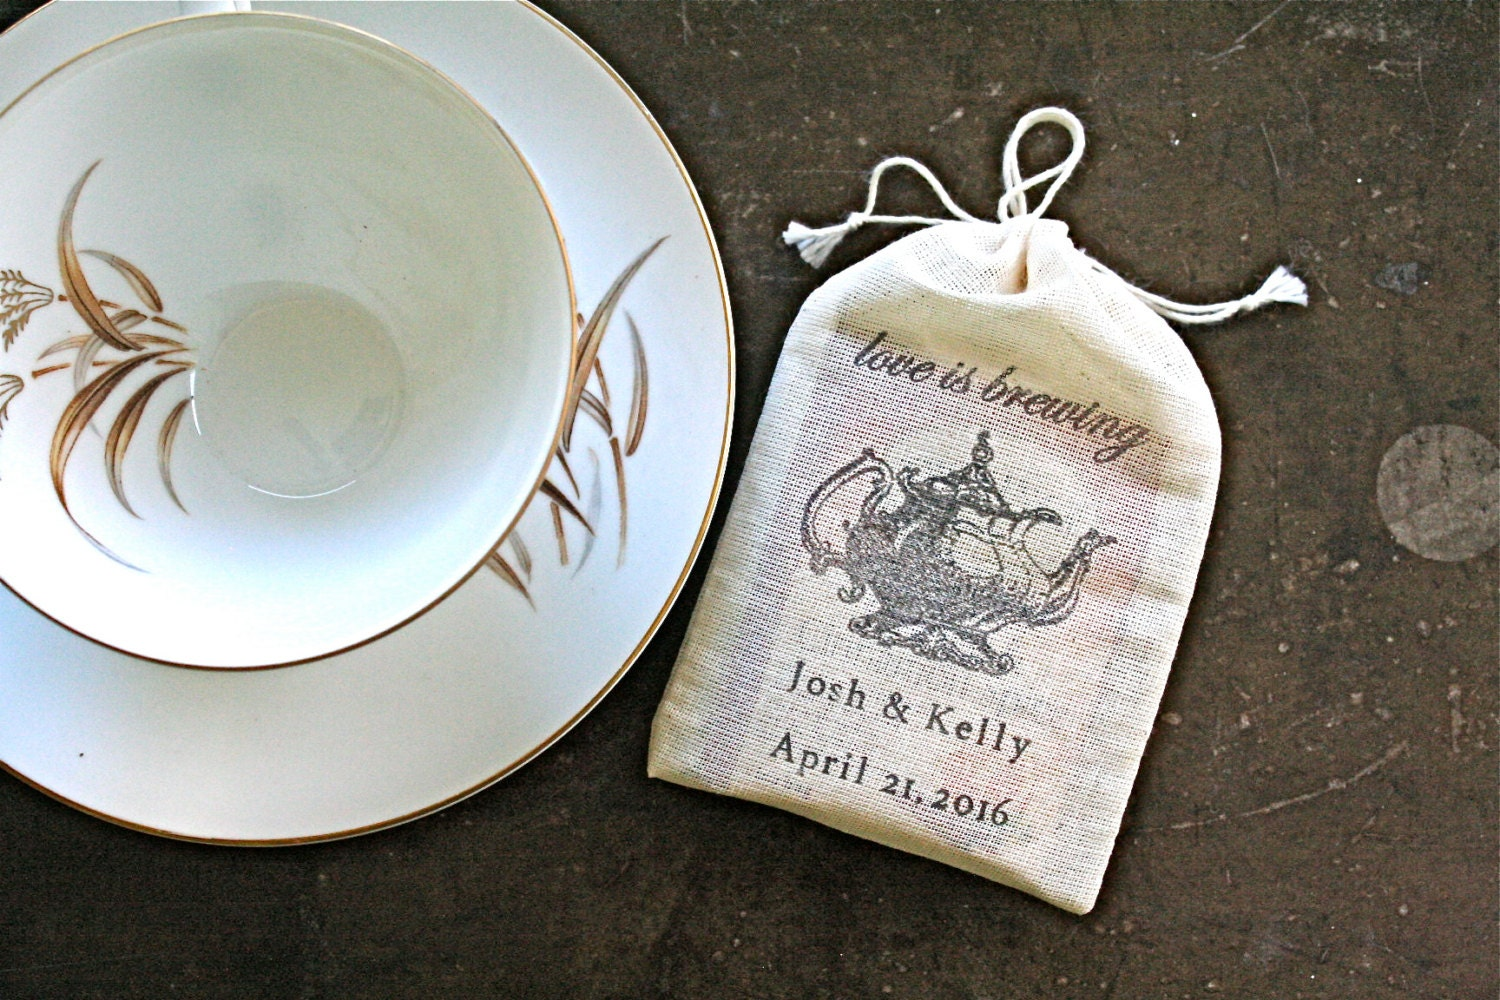 Custom Printed Wedding Favor Bags : Personalized wedding favor bags 3x4.5. Set of 25 double